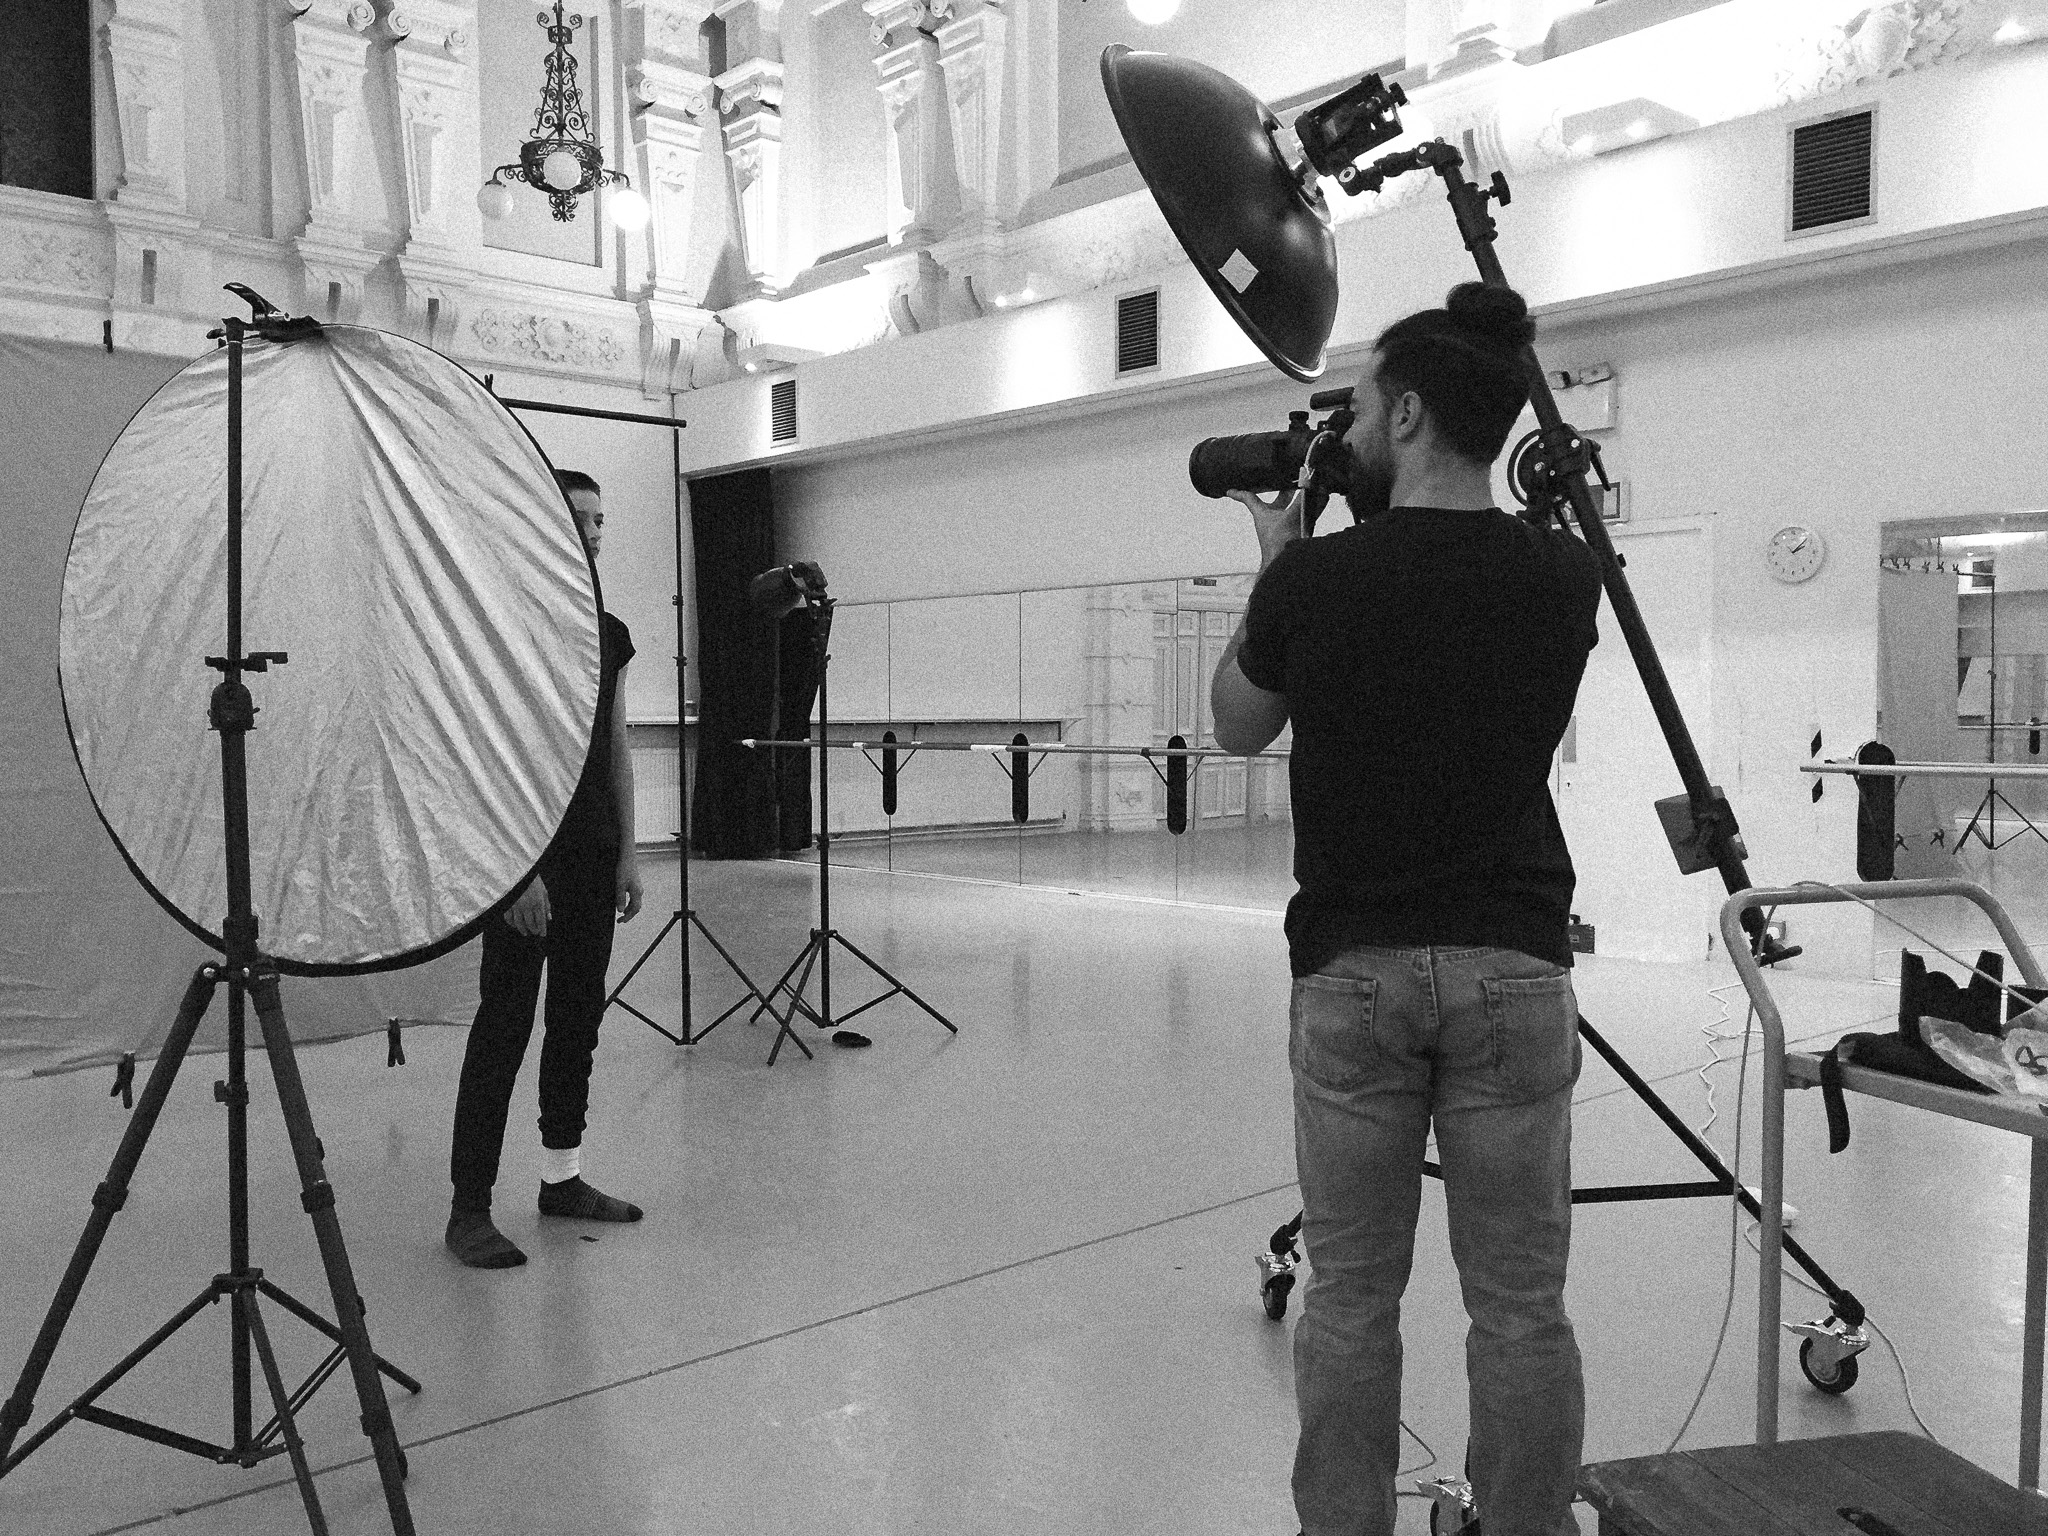 Connecting with the young dancers while shooting their portraits.